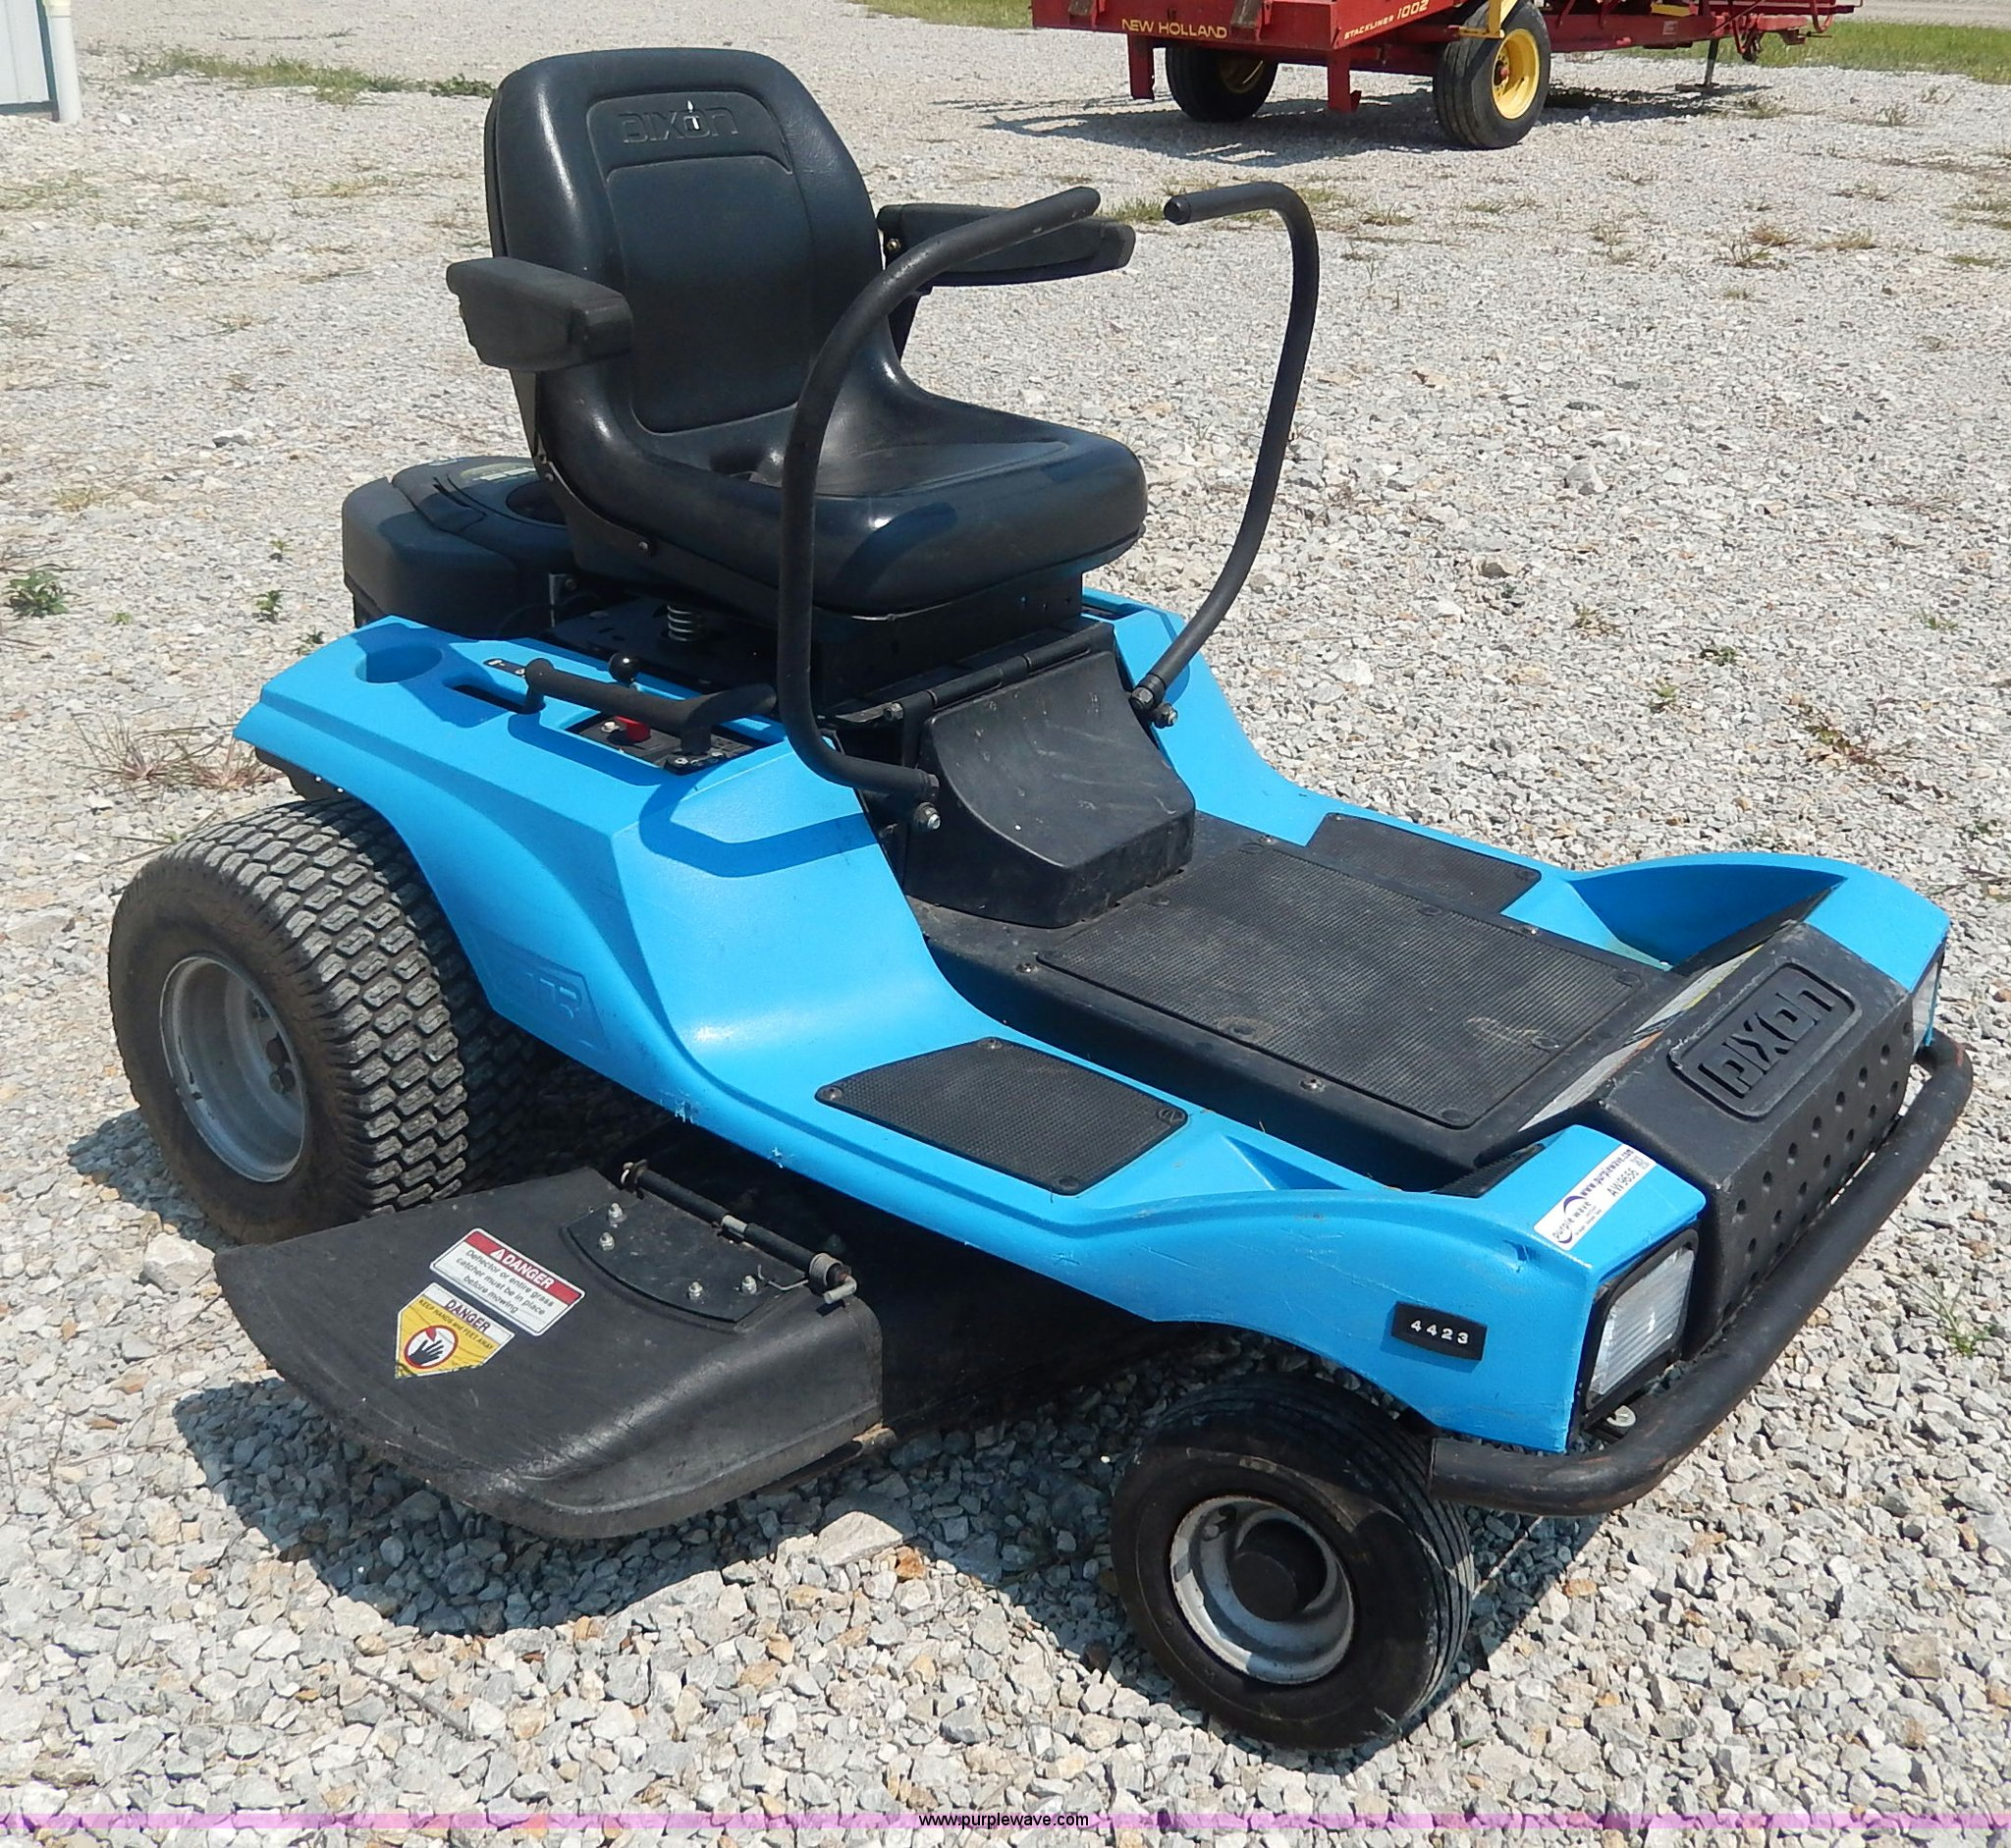 3500 series ztr Array - dixon 4423 ztr lawn mower item aw9656 sold  september 4 rh purplewave com